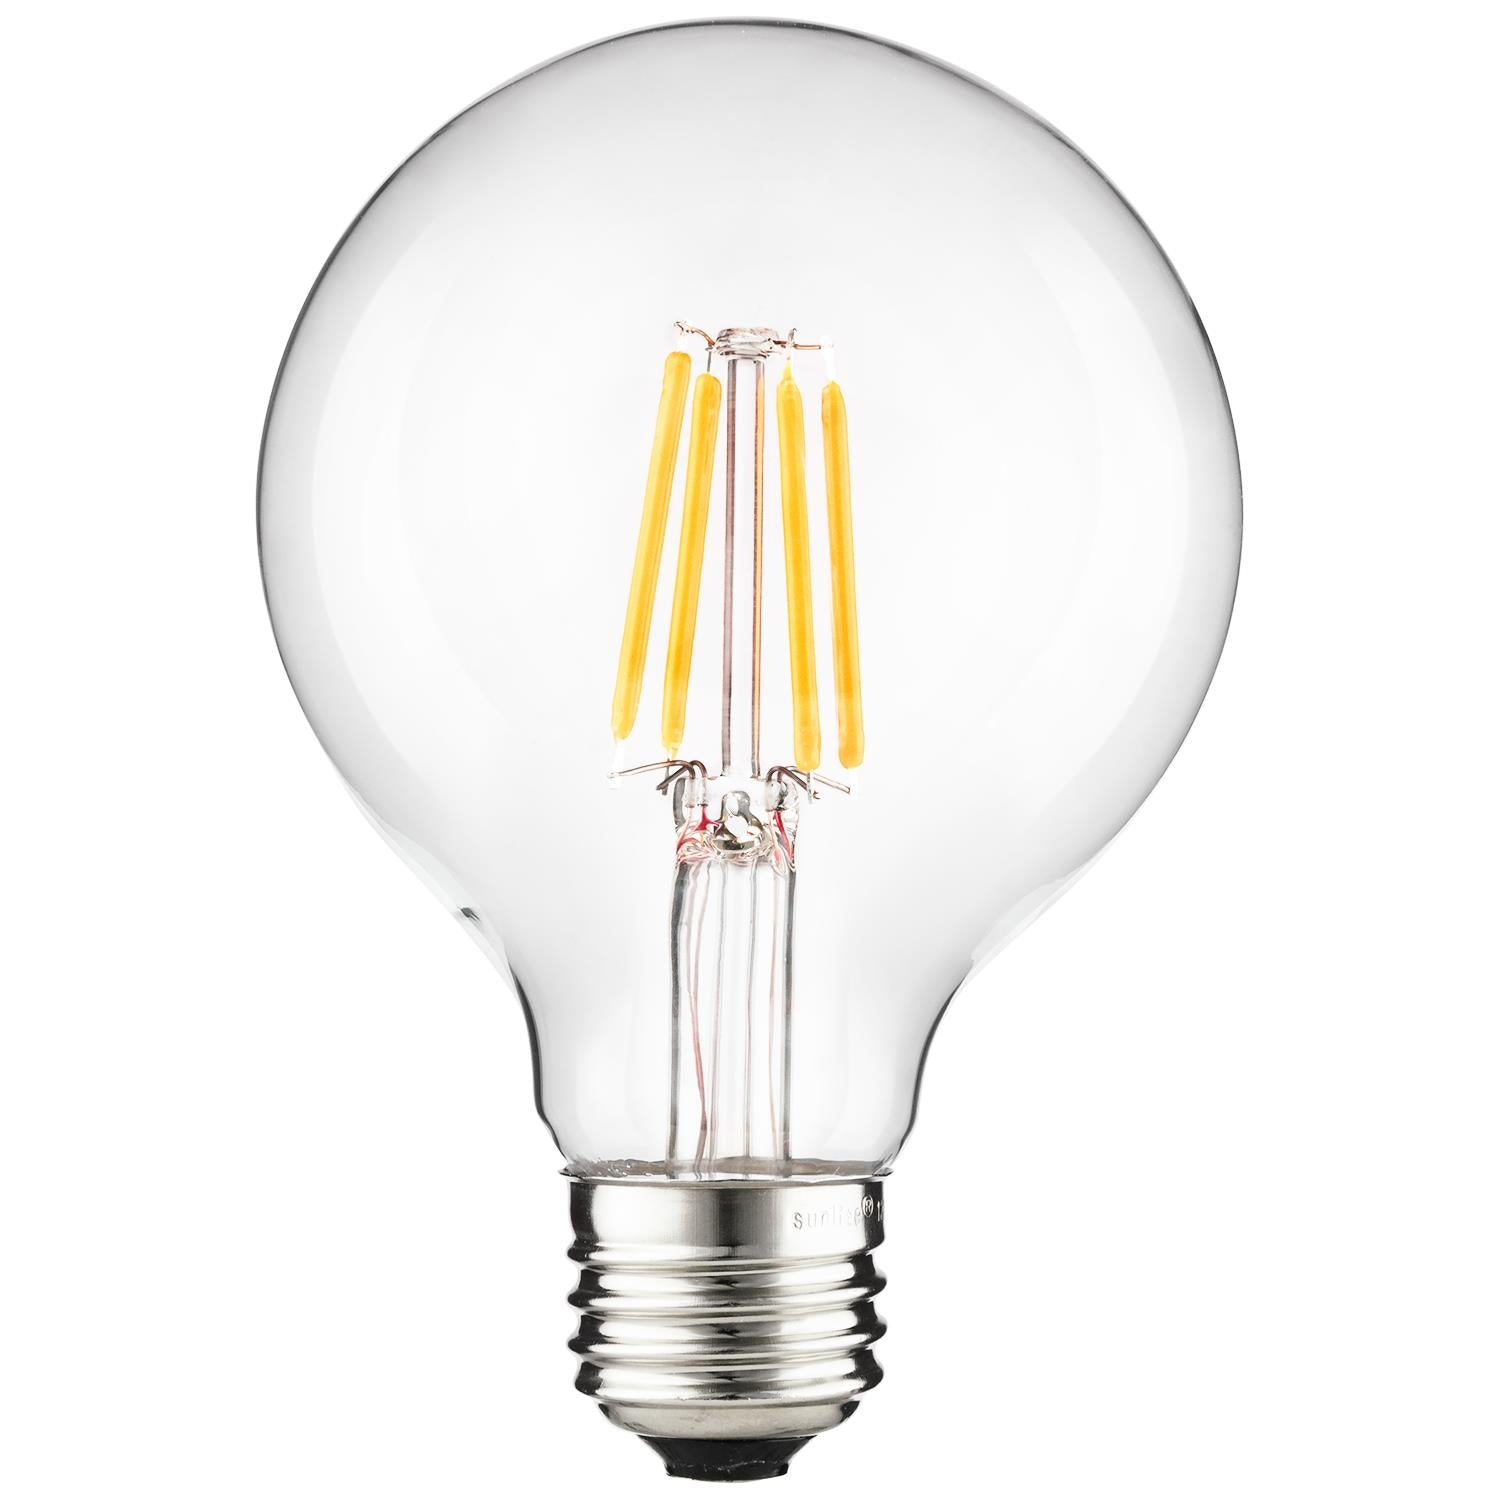 SUNLITE 80464-SU LED Vintage G25 Globe 4w Light Bulb 2200K Warm White